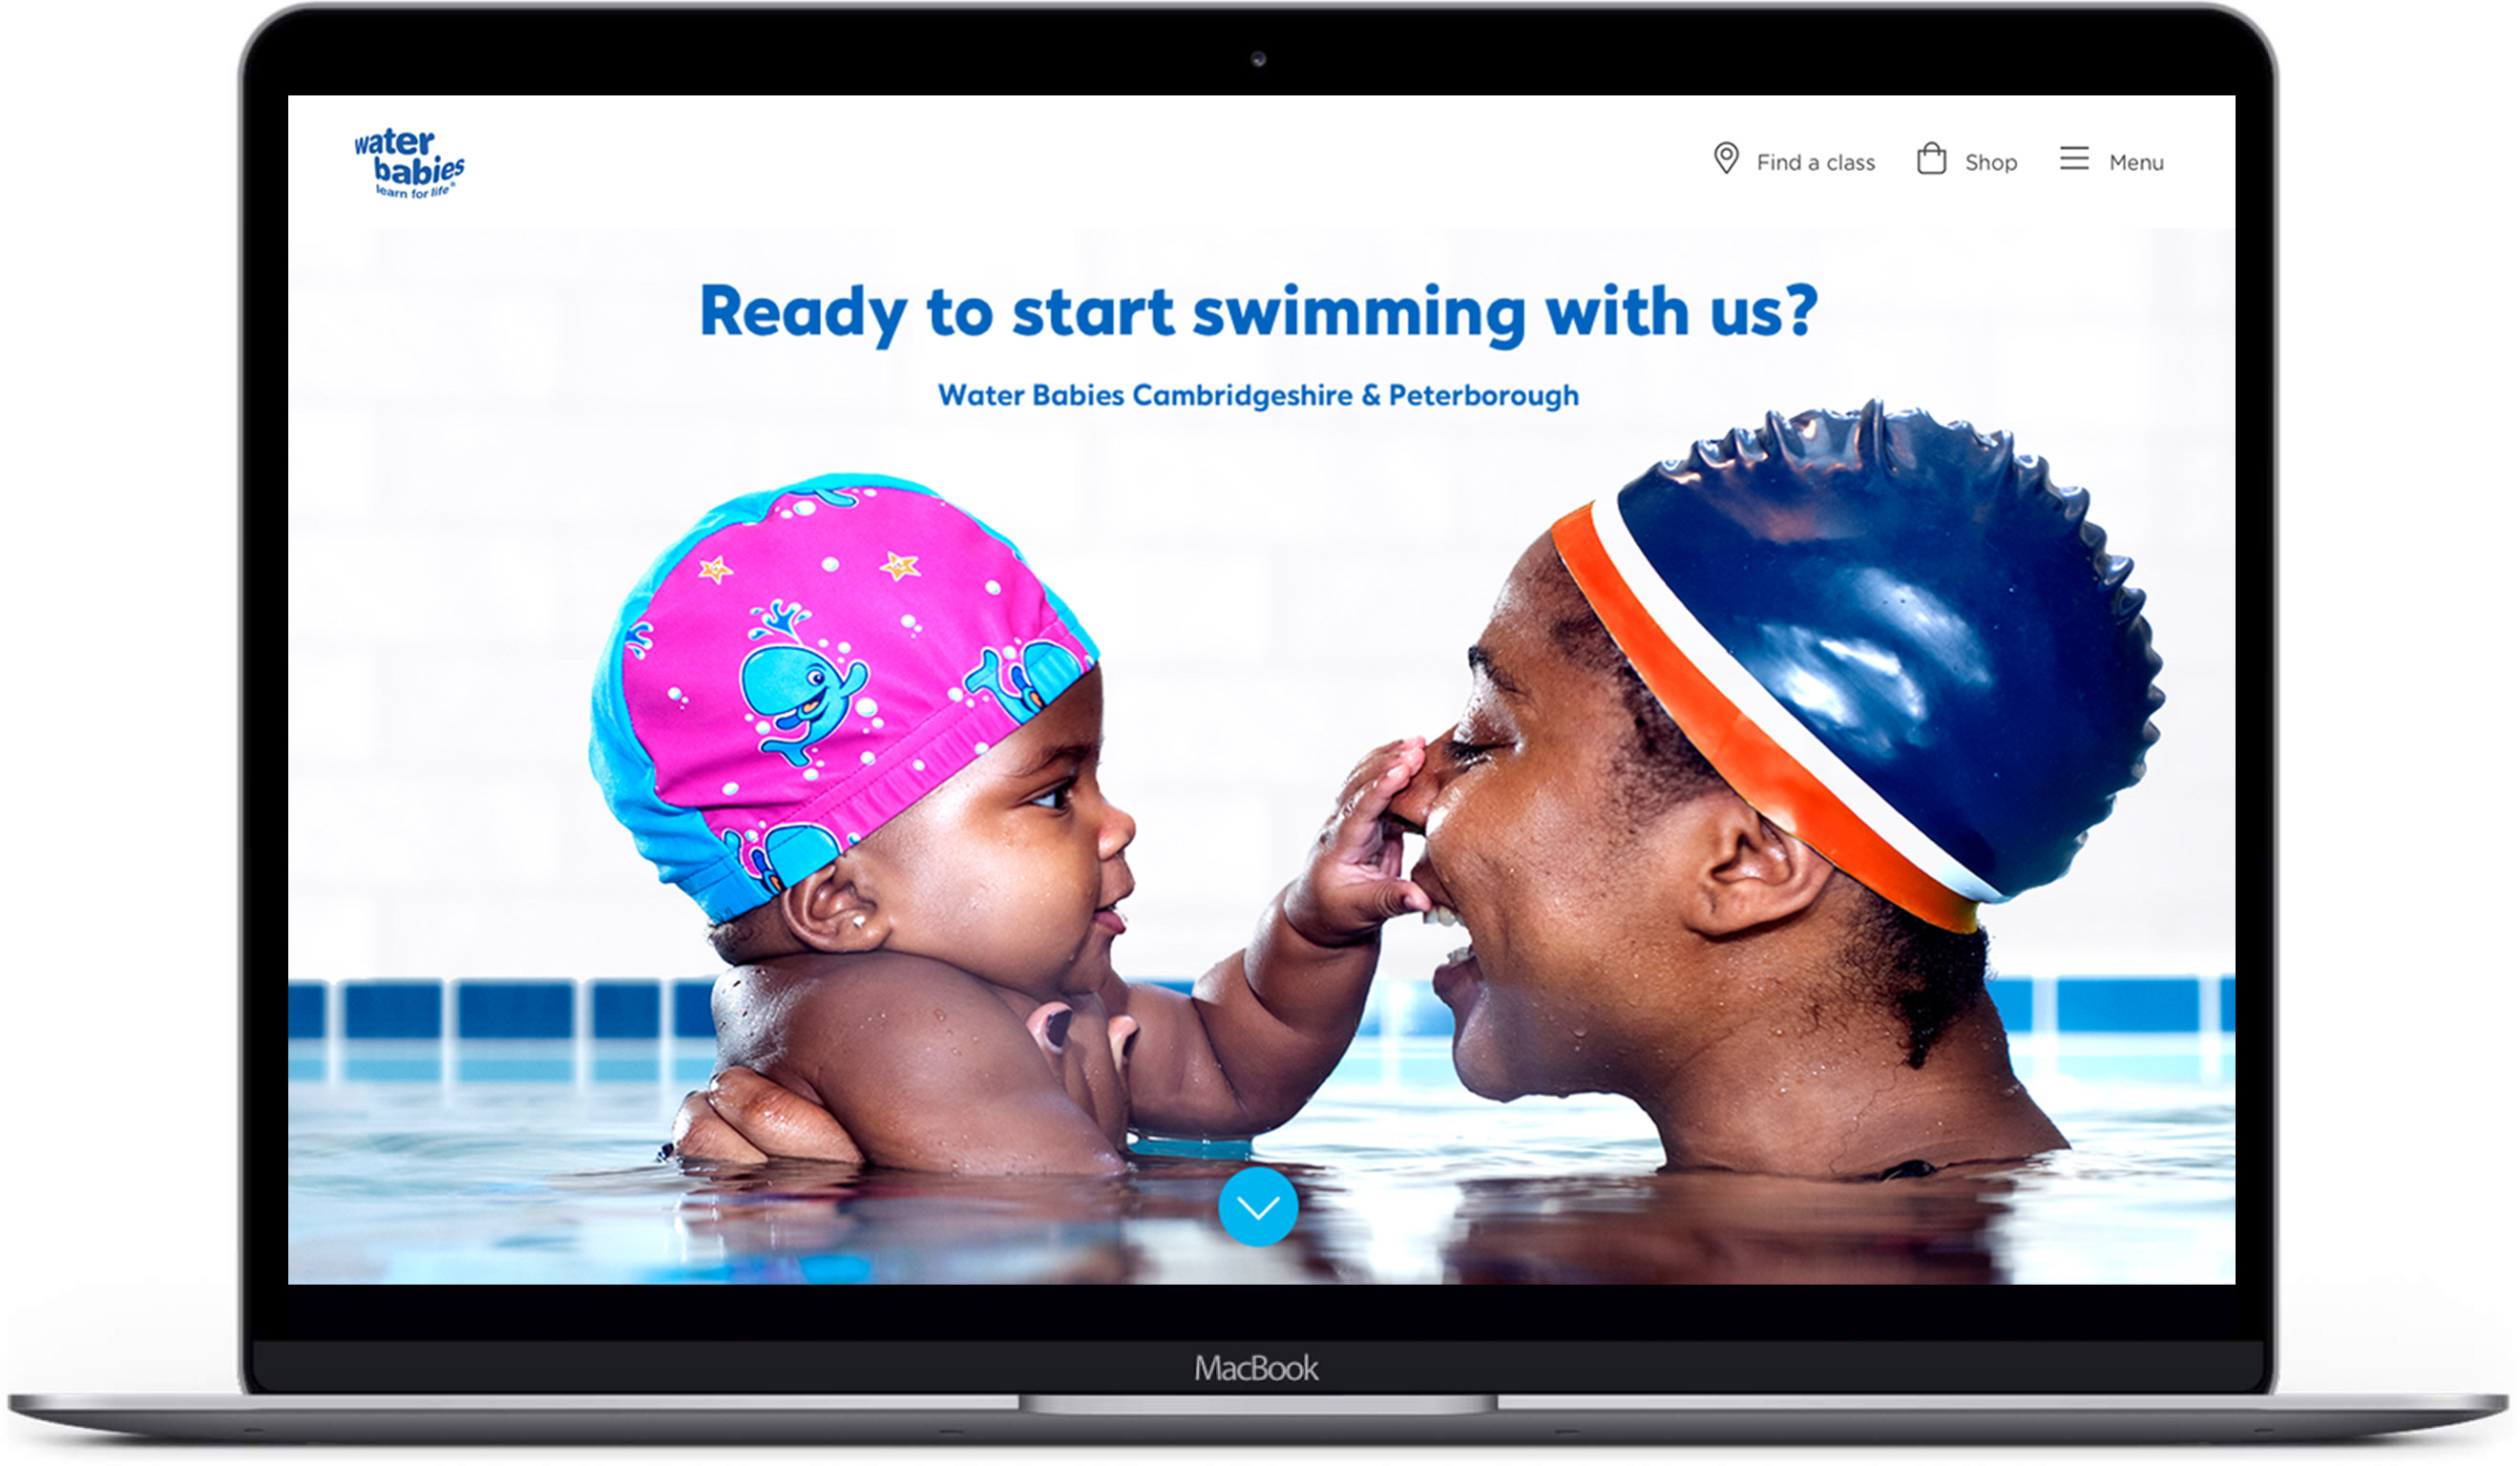 Water Babies website on a laptop